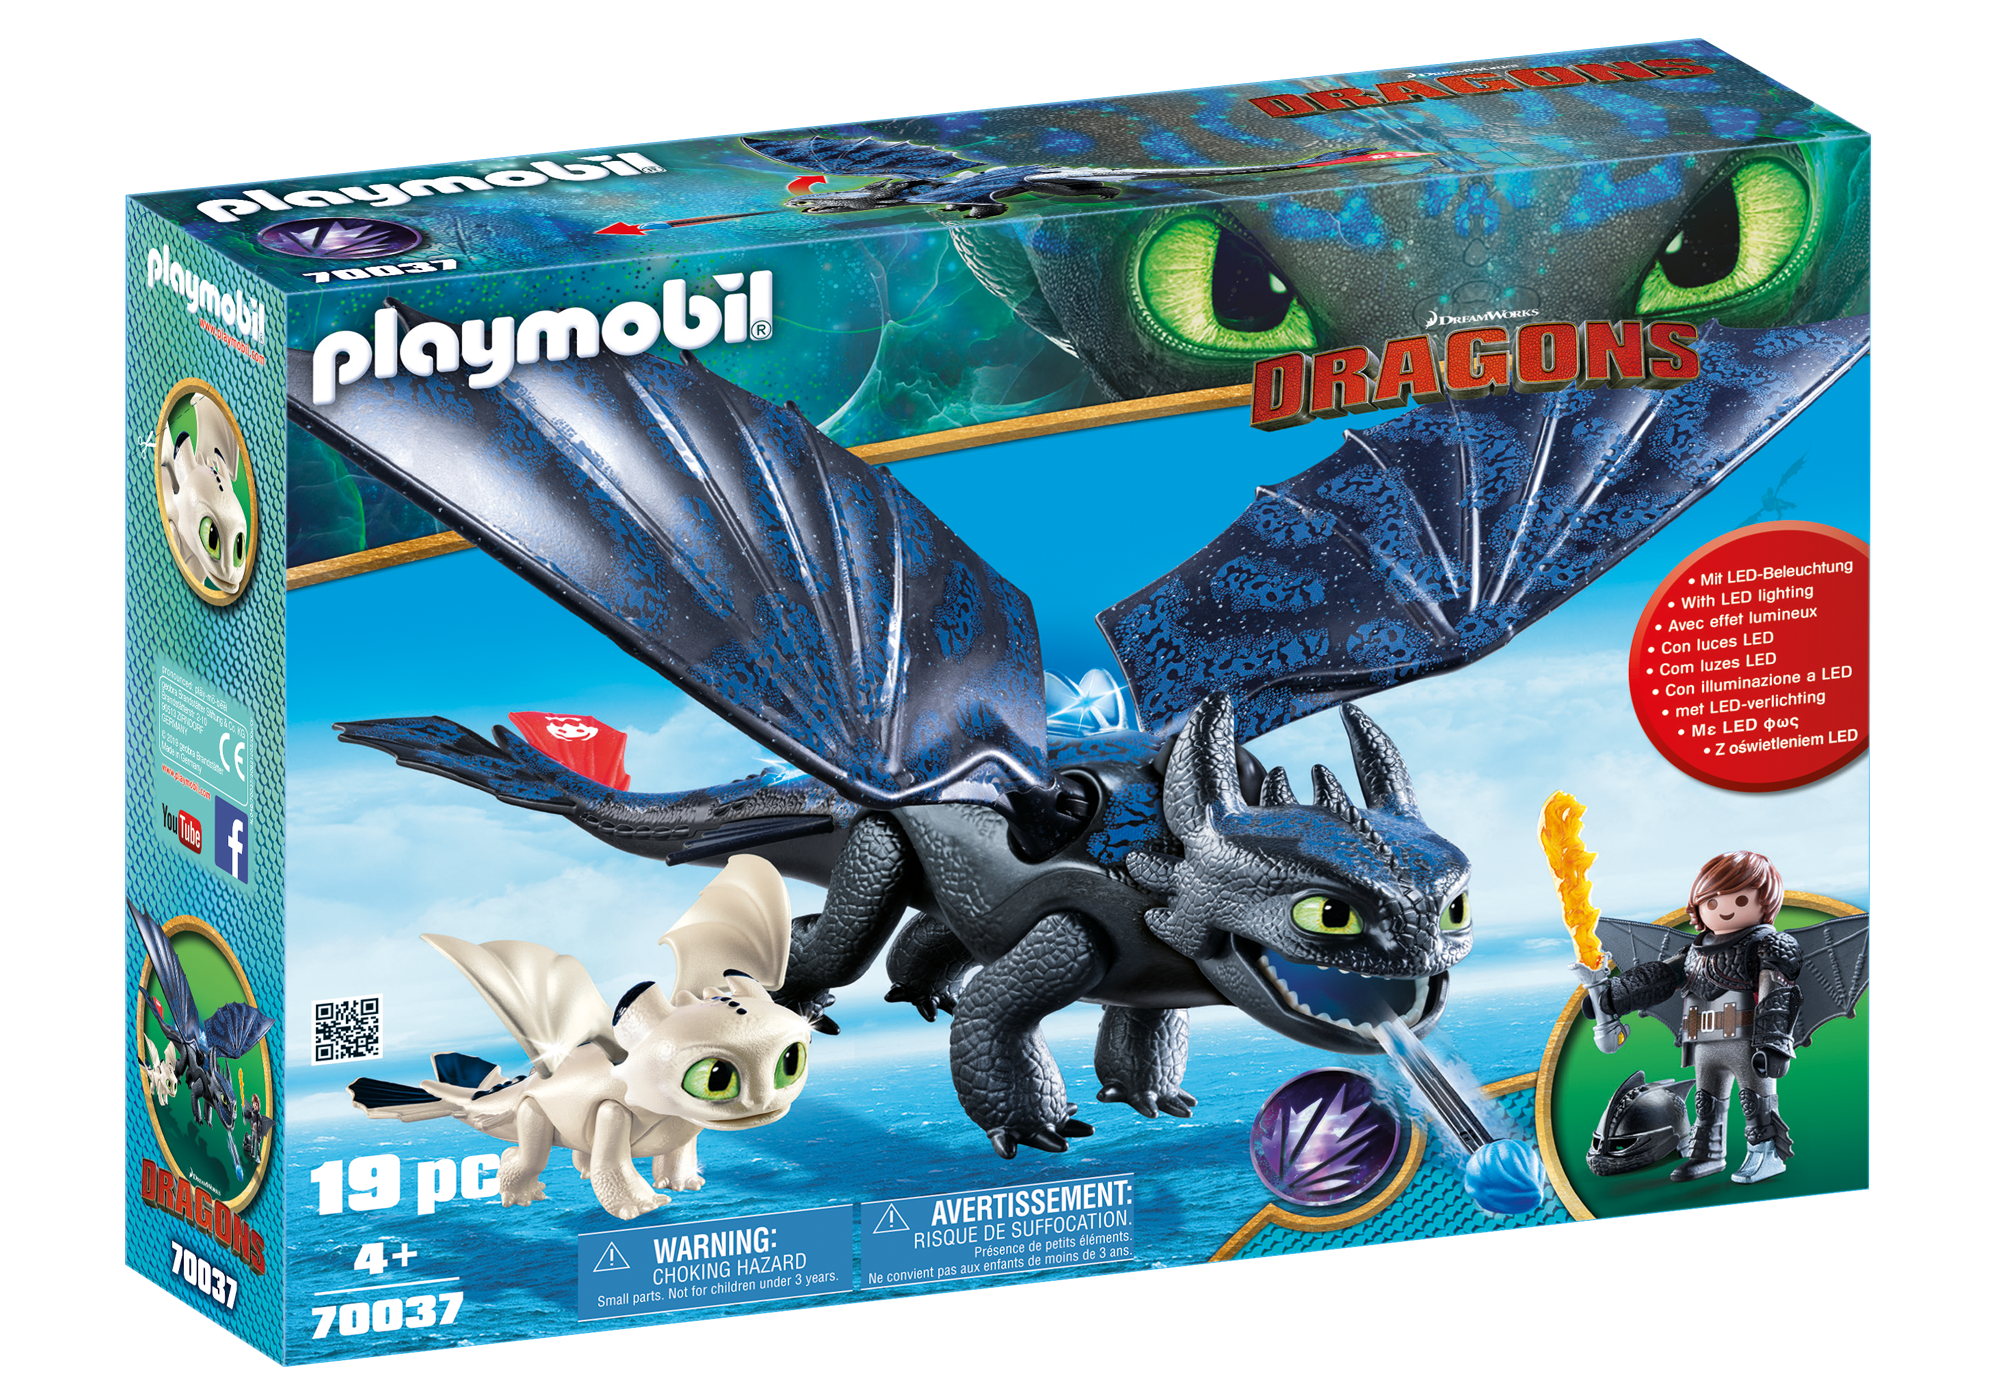 http://media.playmobil.com/i/playmobil/70037_product_box_front/Hiccup and Toothless with Baby Dragon